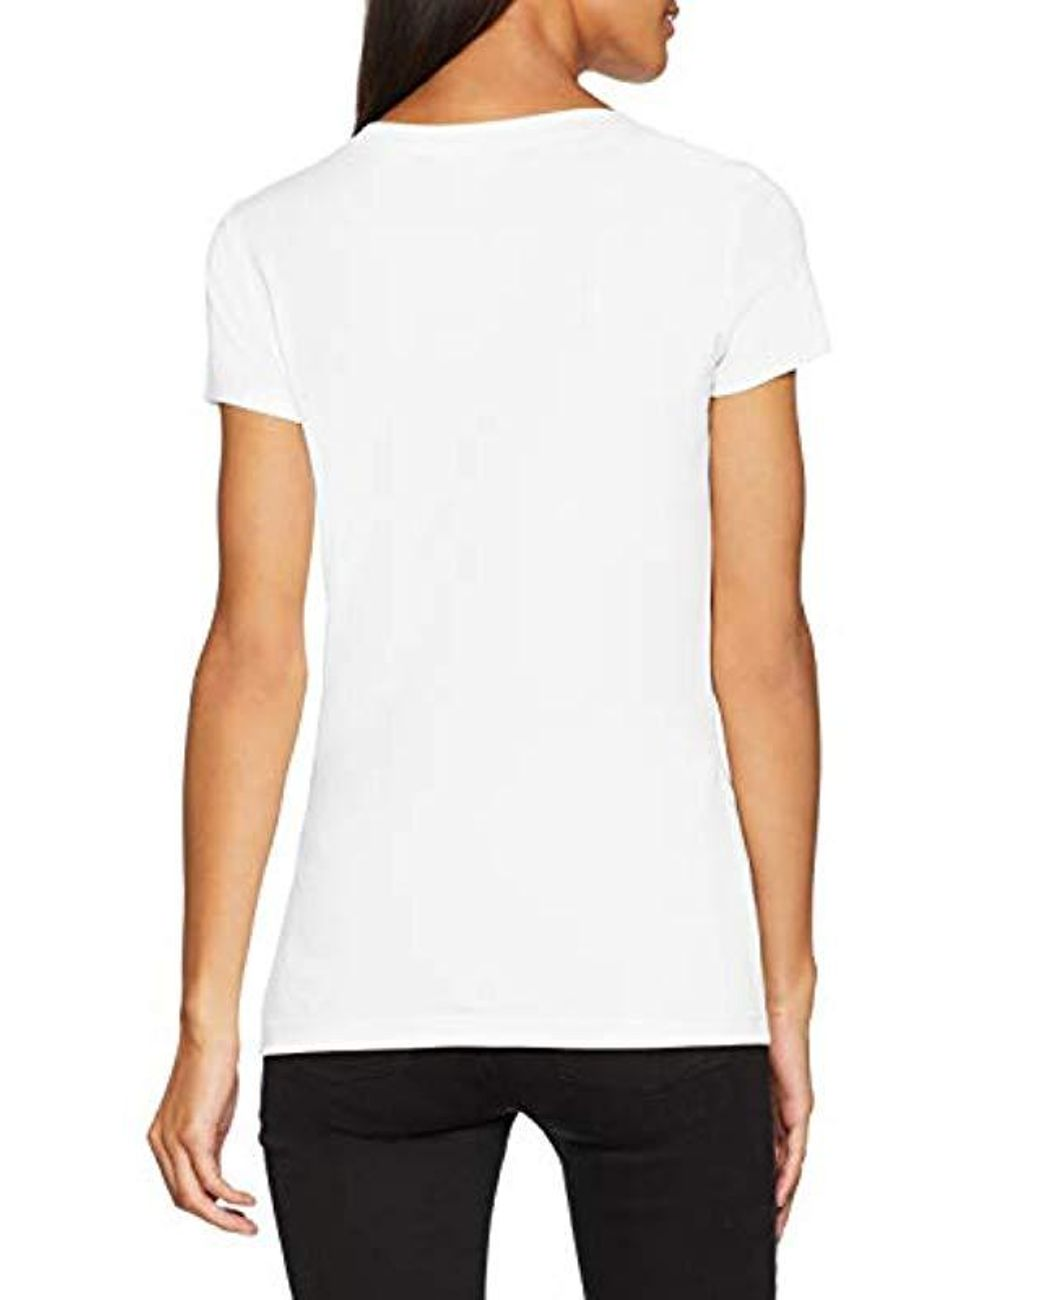 Shirt With Women's Short T Love Sleeve And EyeMouth White P80XkwOn